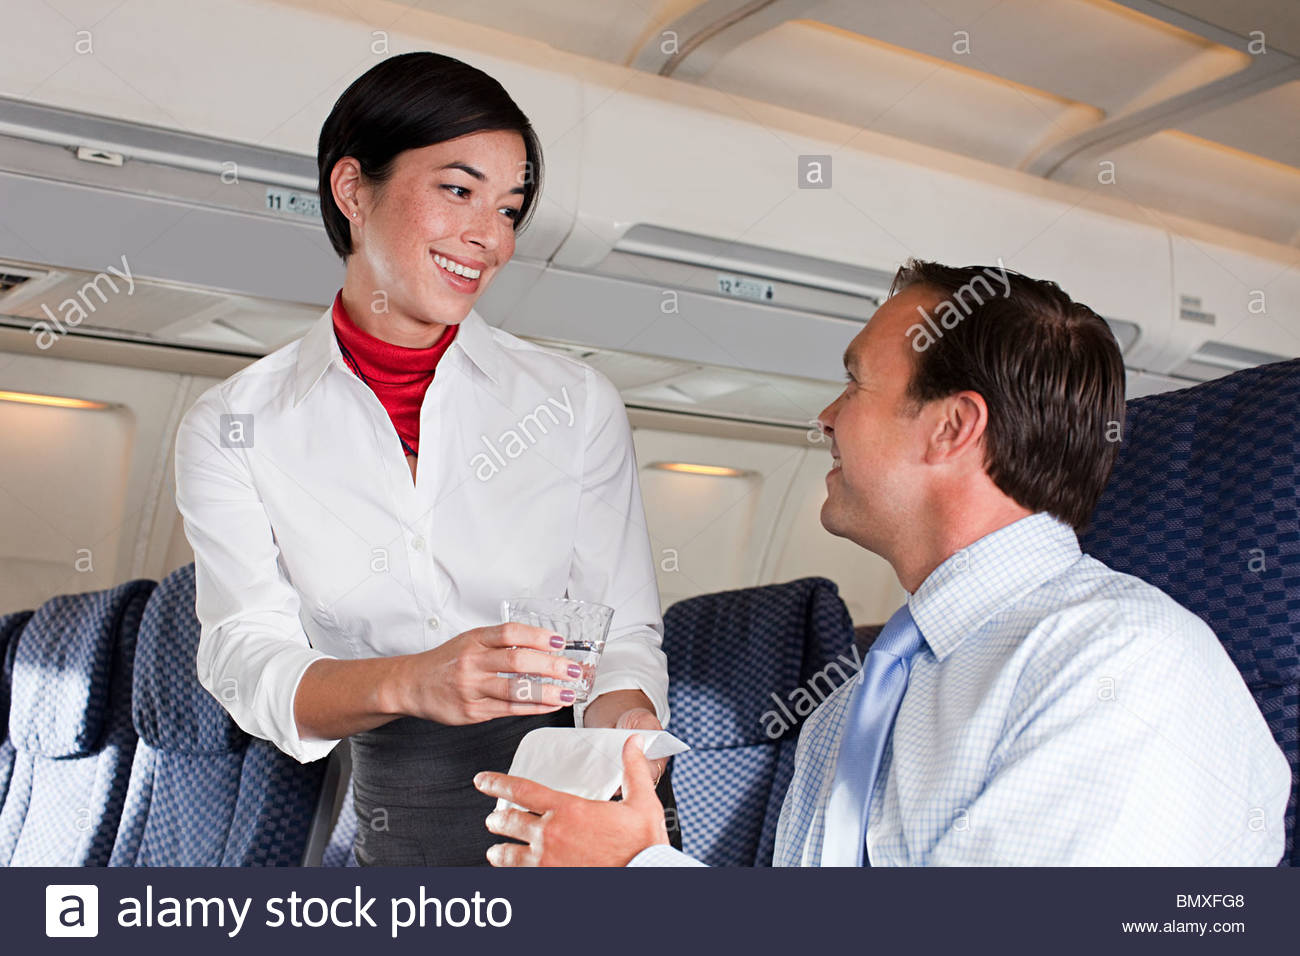 Air stewardess giving drink to passenger - Stock Image